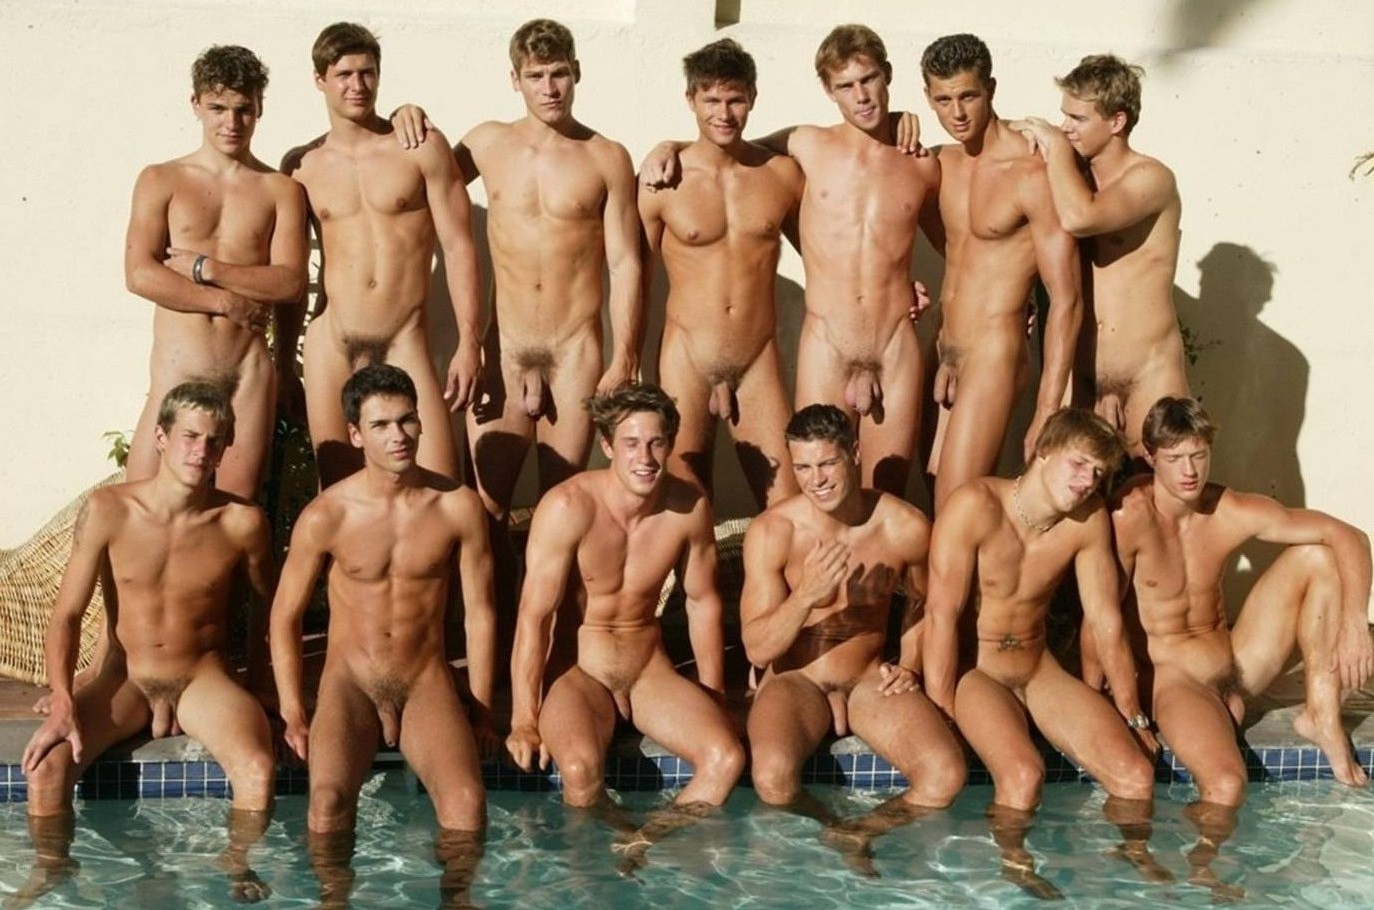 Mix race men naked something is